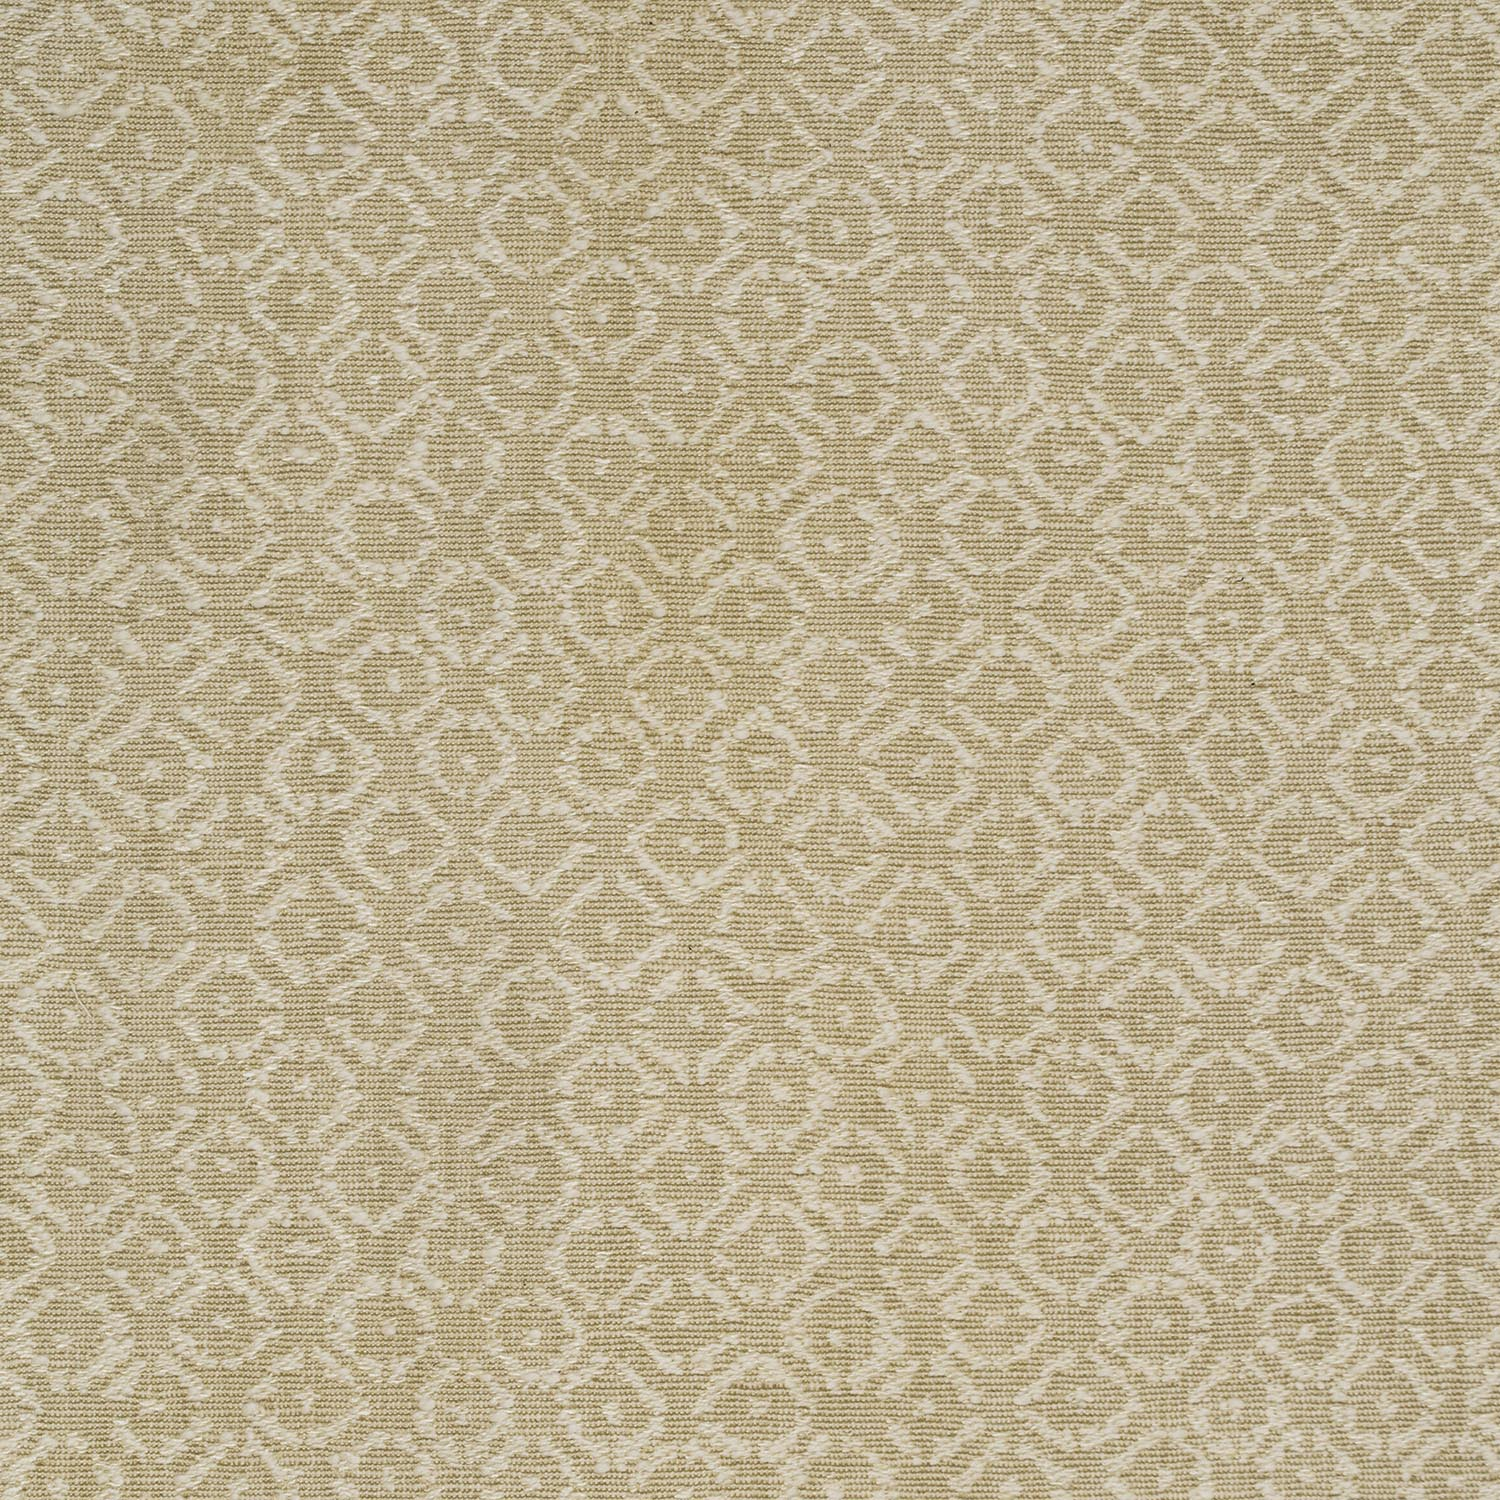 <p><strong>ALBEMARELE</strong>beige 1600-07<a href=/the-langham-collection/albemarle-beige-1600-07>More →</a></p>